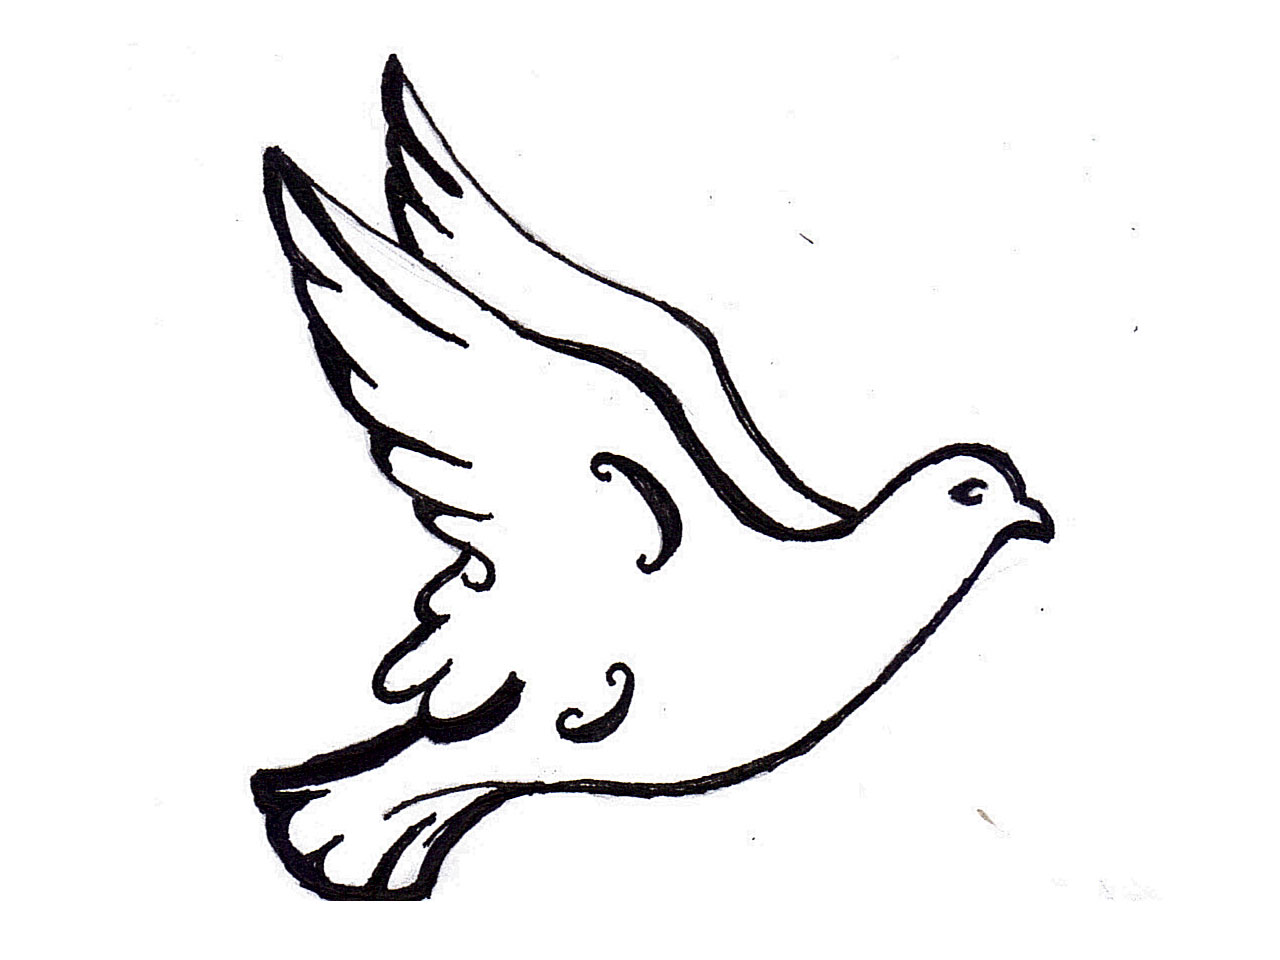 white dove drawing free download best white dove drawing on